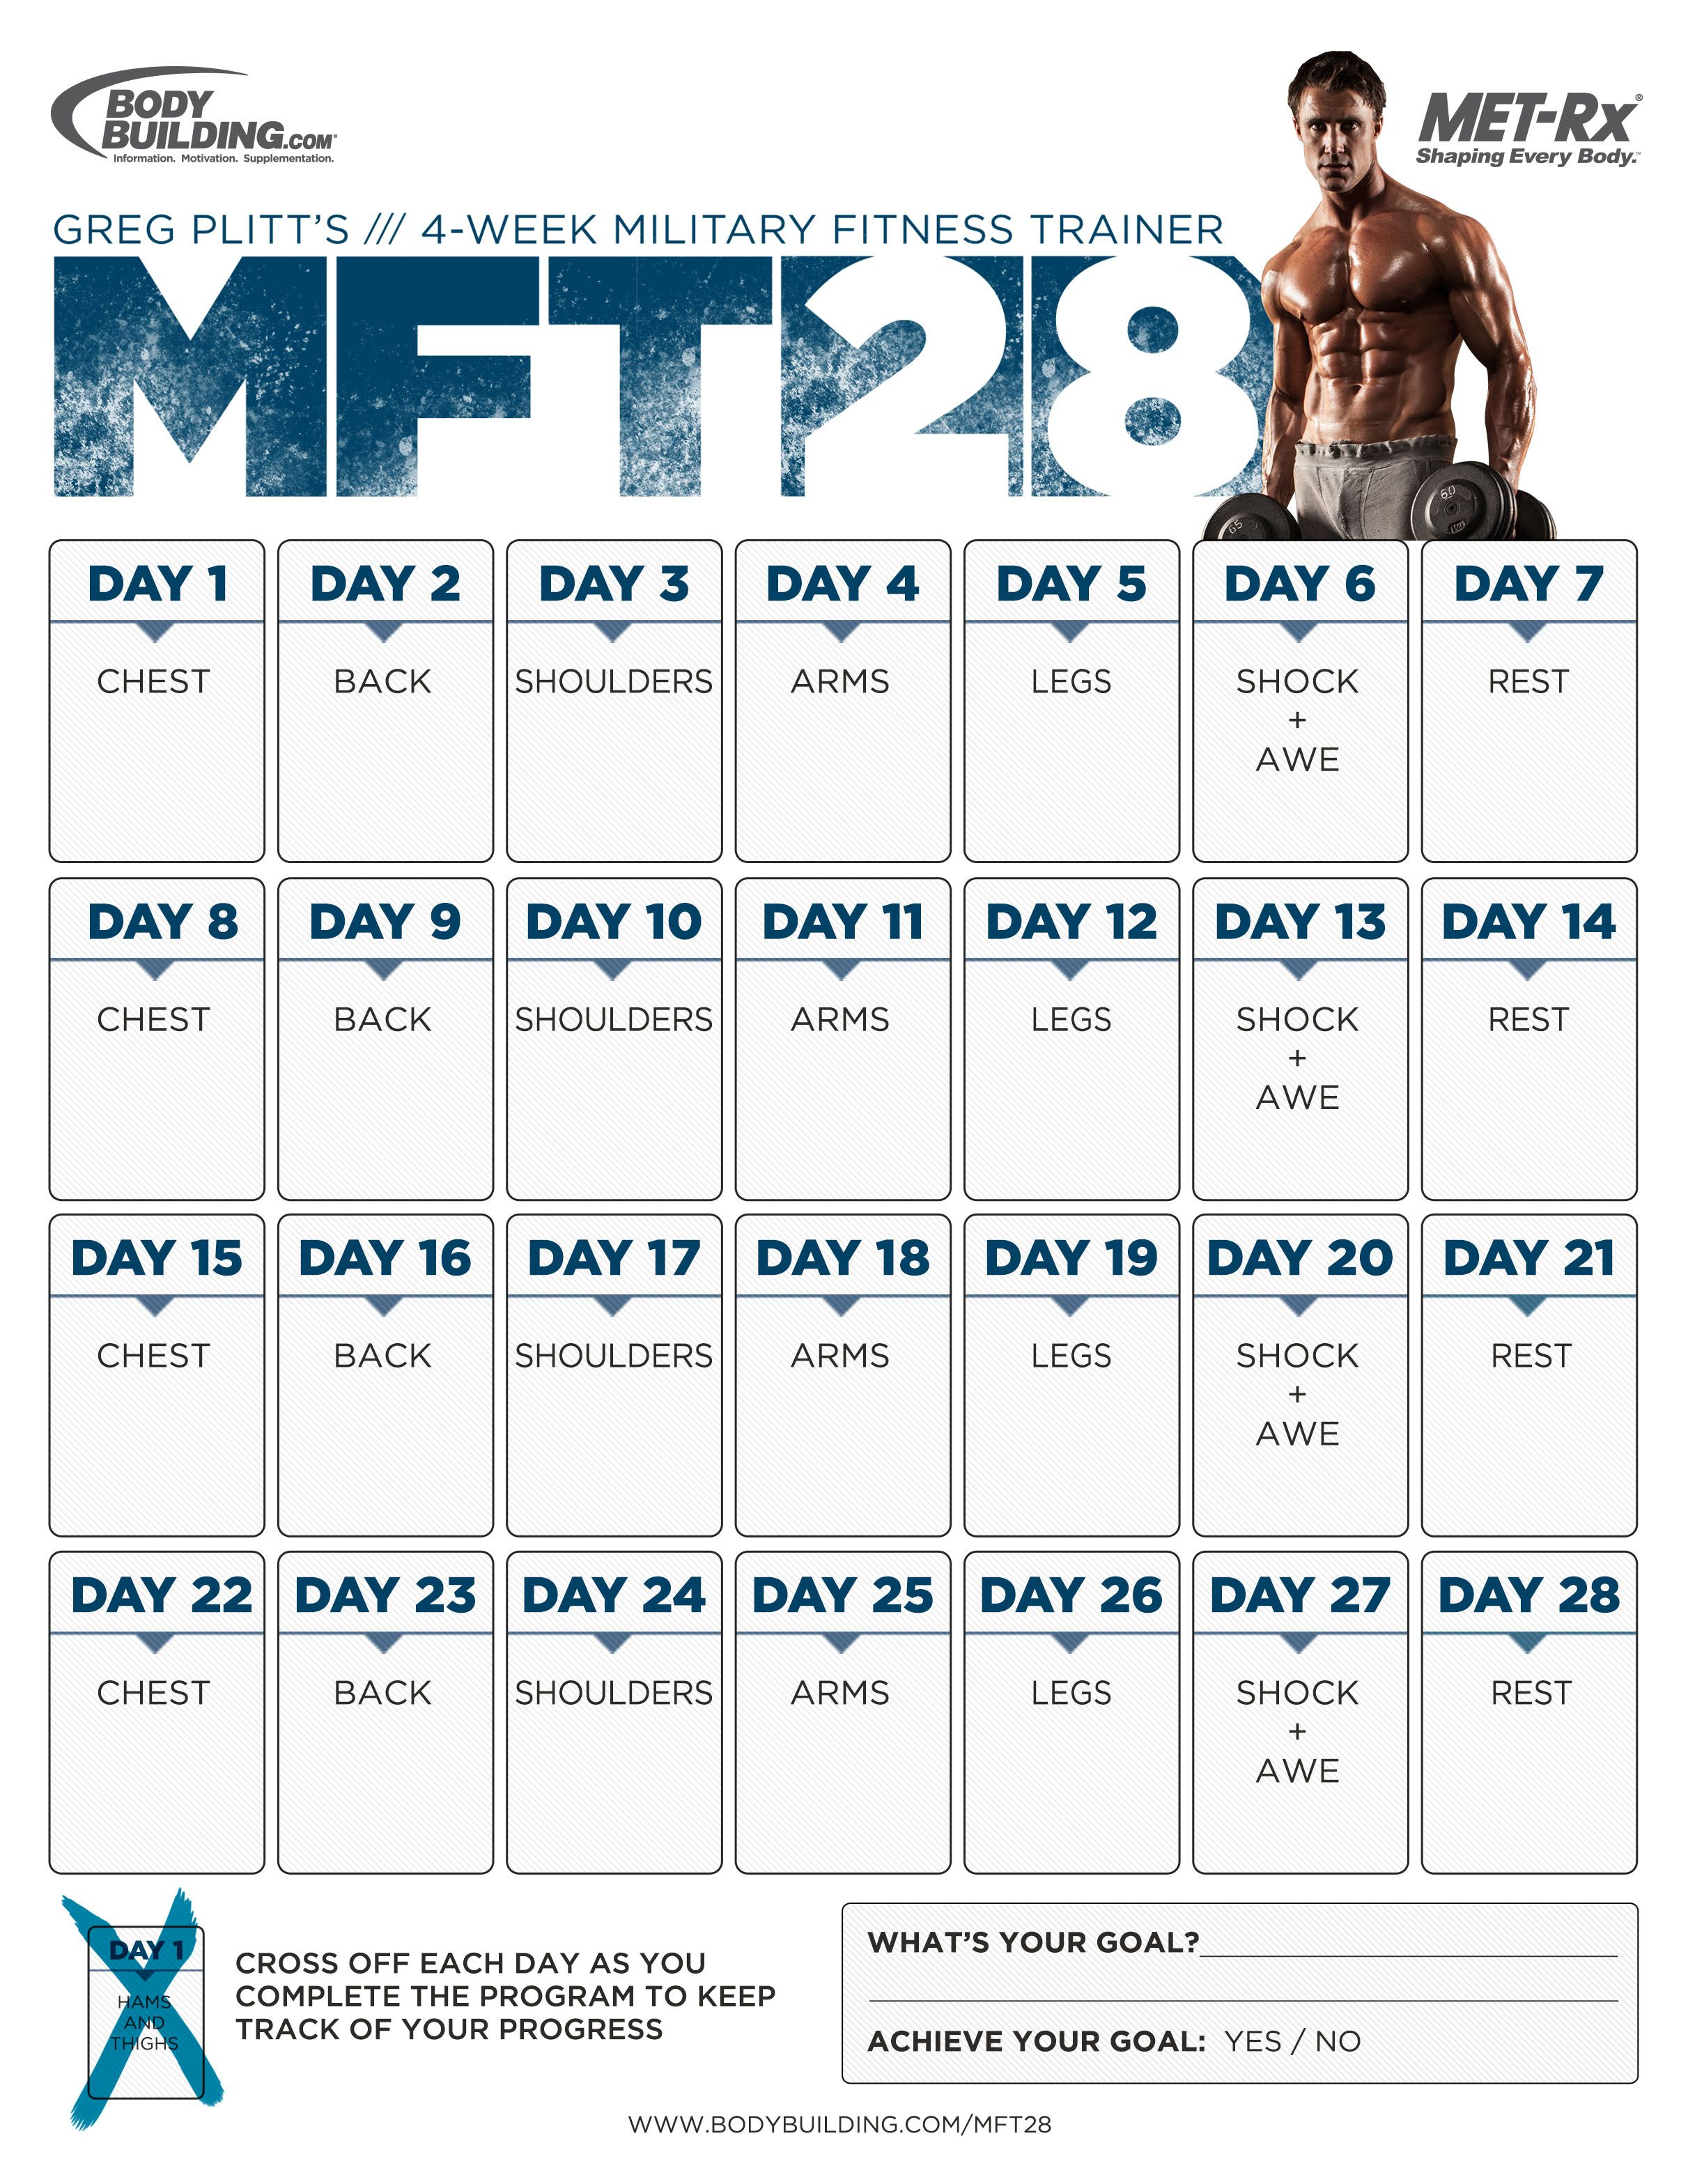 MFT28 Greg Plitts 4 Week Military Fitness Trainer By MET Rx